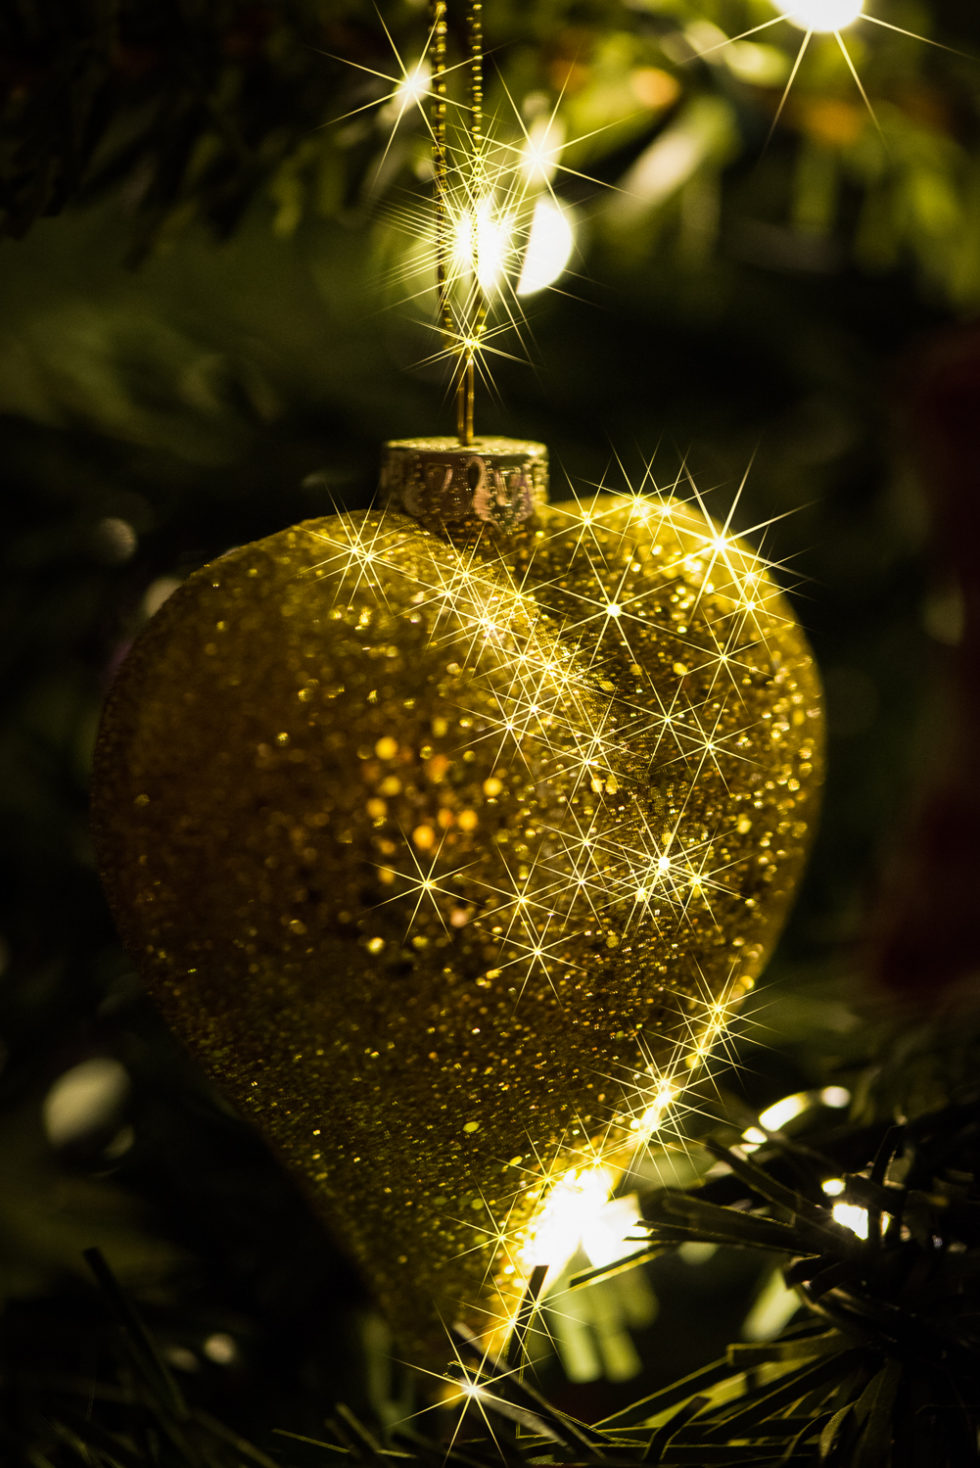 109/365v3 – Christmas Bauble